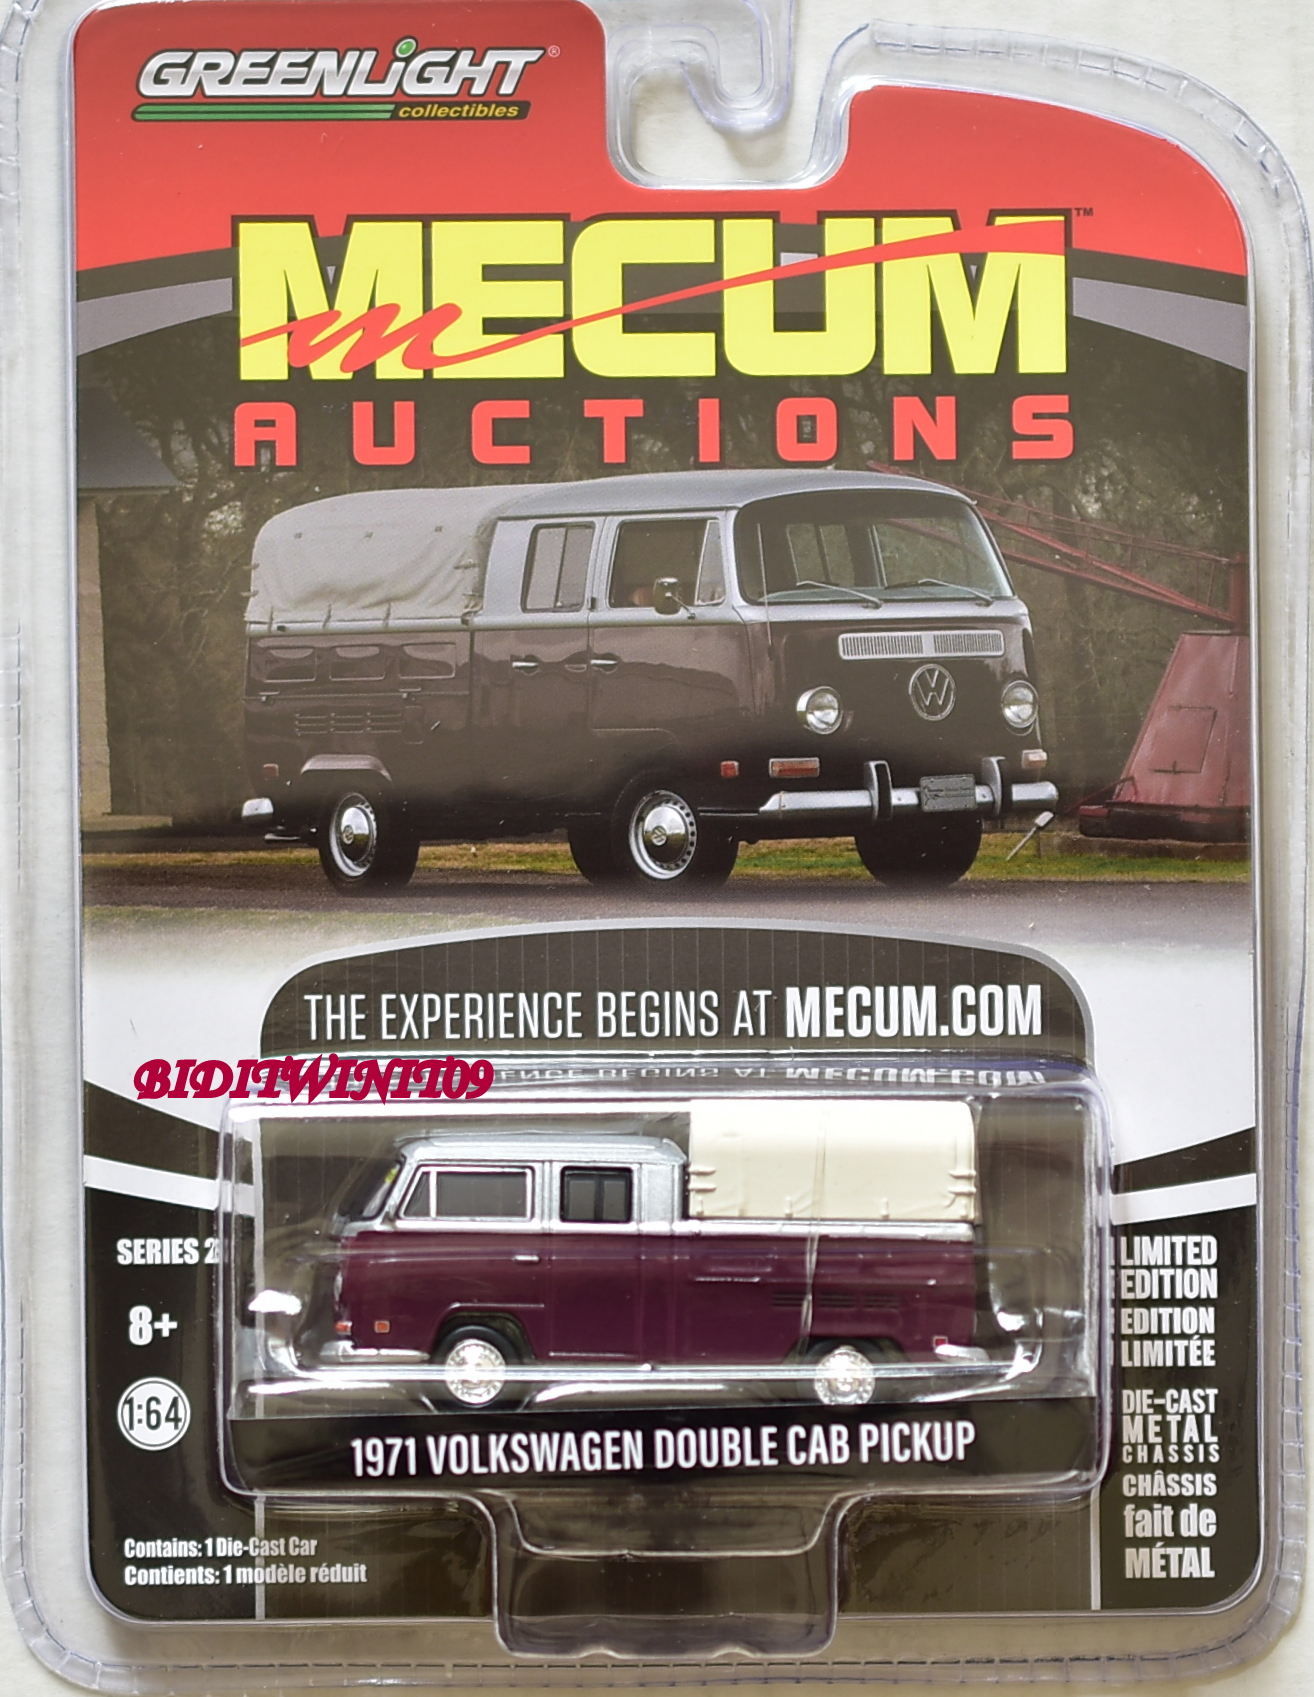 GREENLIGHT MECUM AUCTIONS SERIES 2 1971 VOLKSWAGEN DOUBLE CAB PICKUP